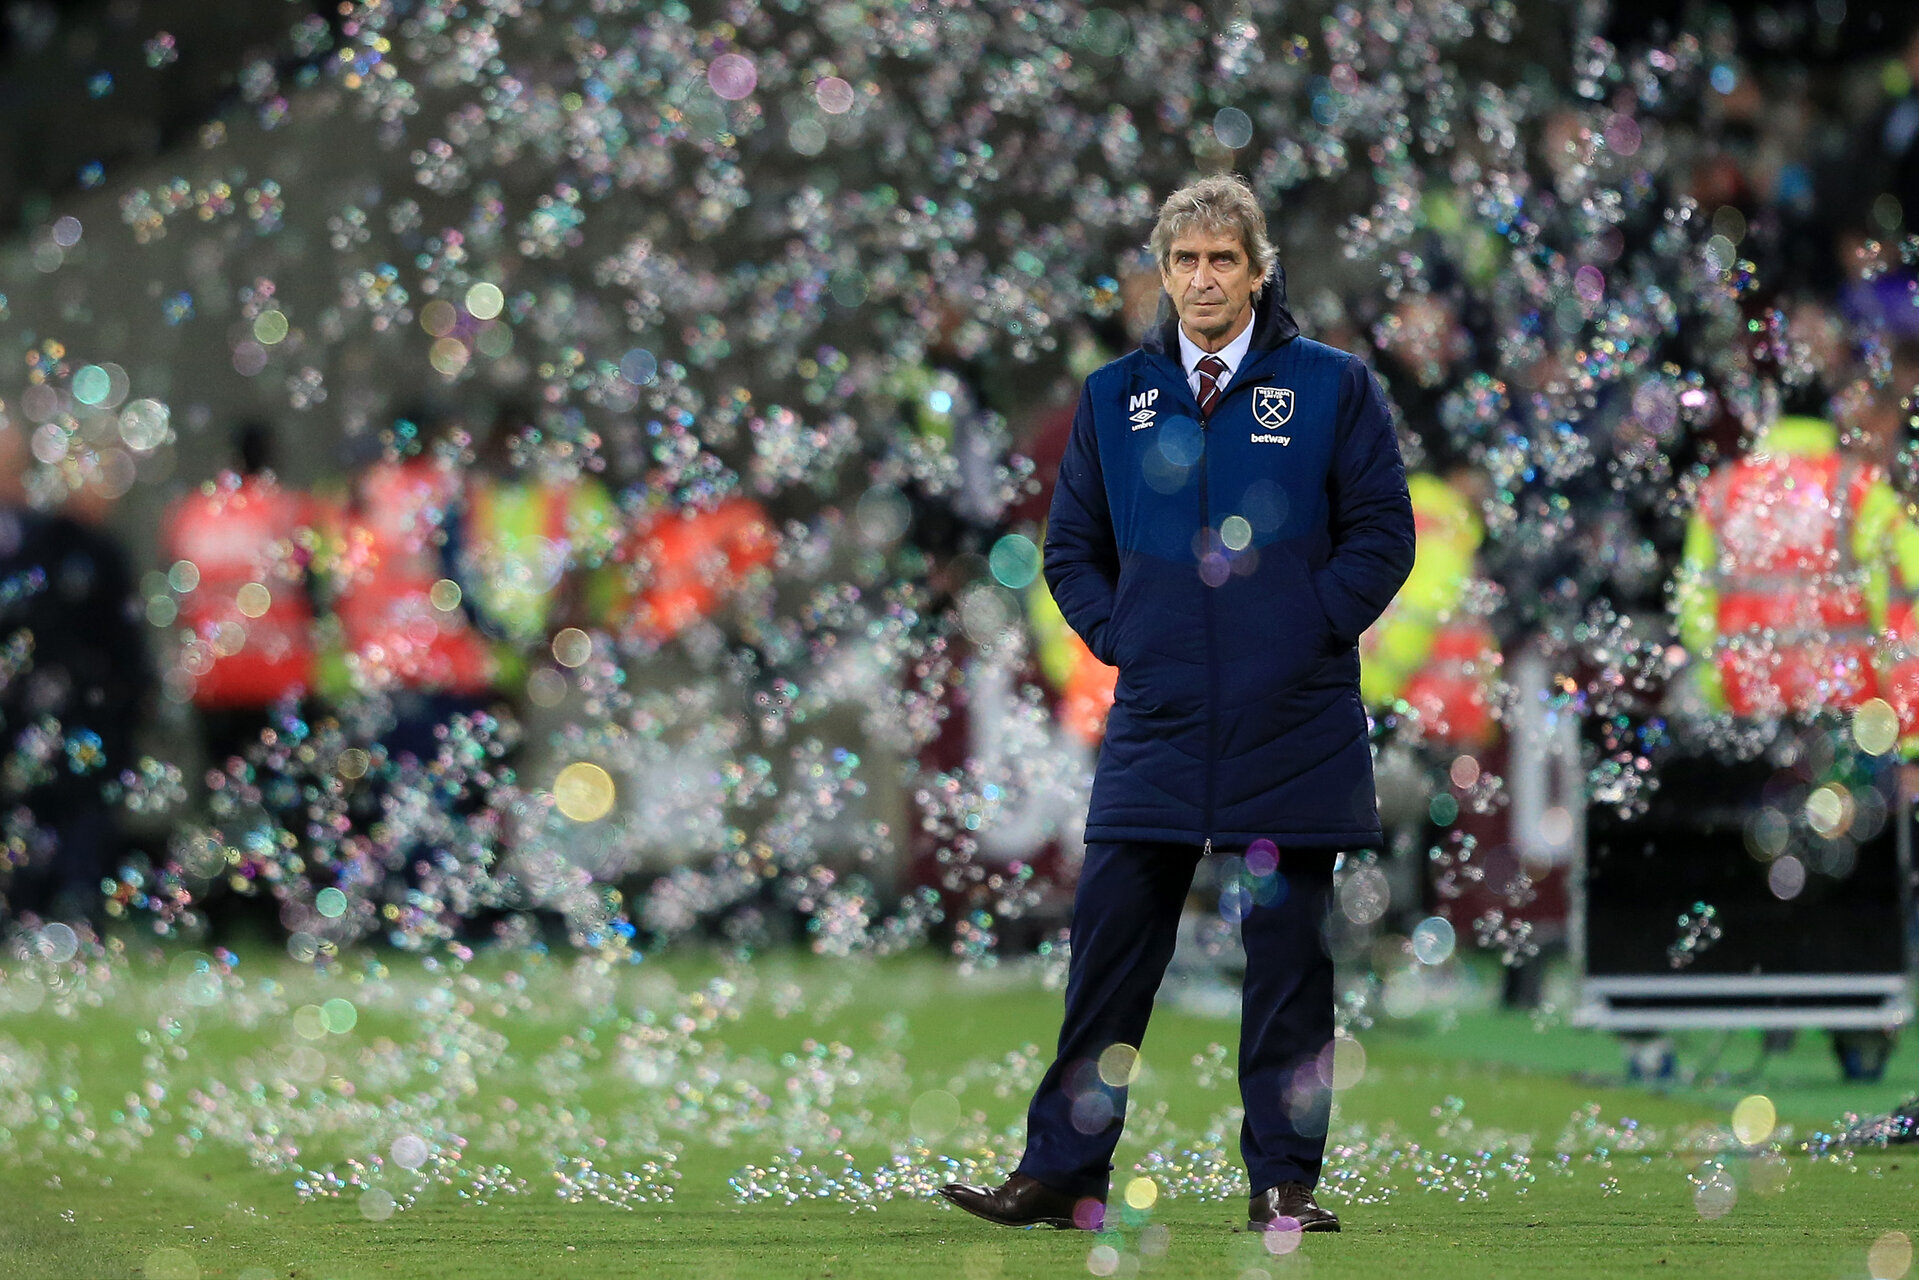 LONDON, ENGLAND - DECEMBER 08: Manuel Pellegrini, Manager of West Ham United looks on after the Premier League match between West Ham United and Crystal Palace at London Stadium on December 8, 2018 in London, United Kingdom.  (Photo by Stephen Pond/Getty Images)